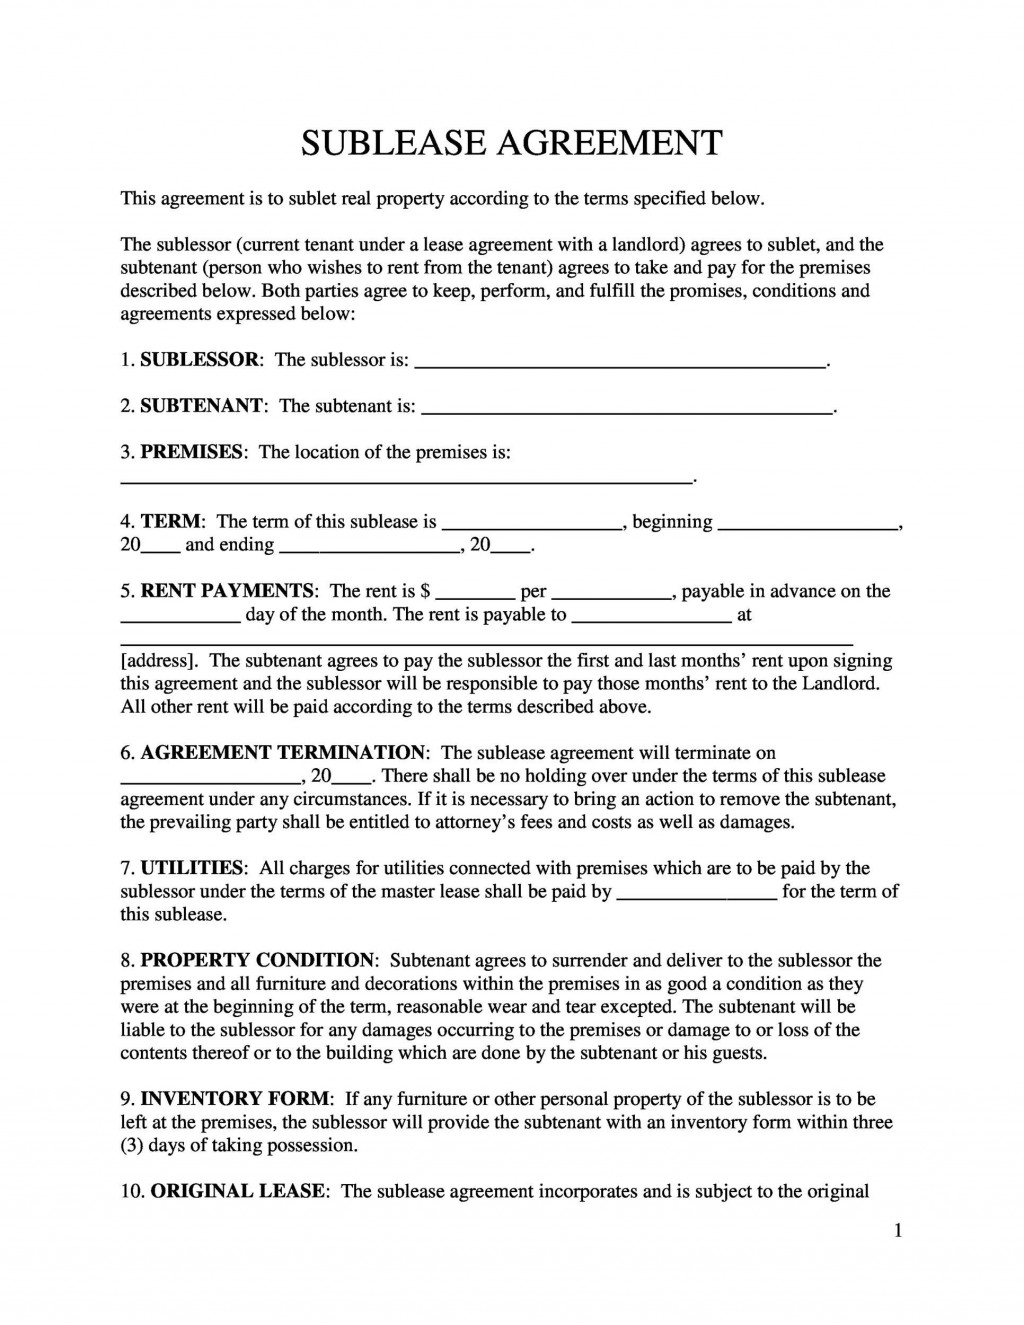 005 Fascinating Free Sublease Agreement Template Pdf Photo  Room Rental Car Form Residential LeaseLarge